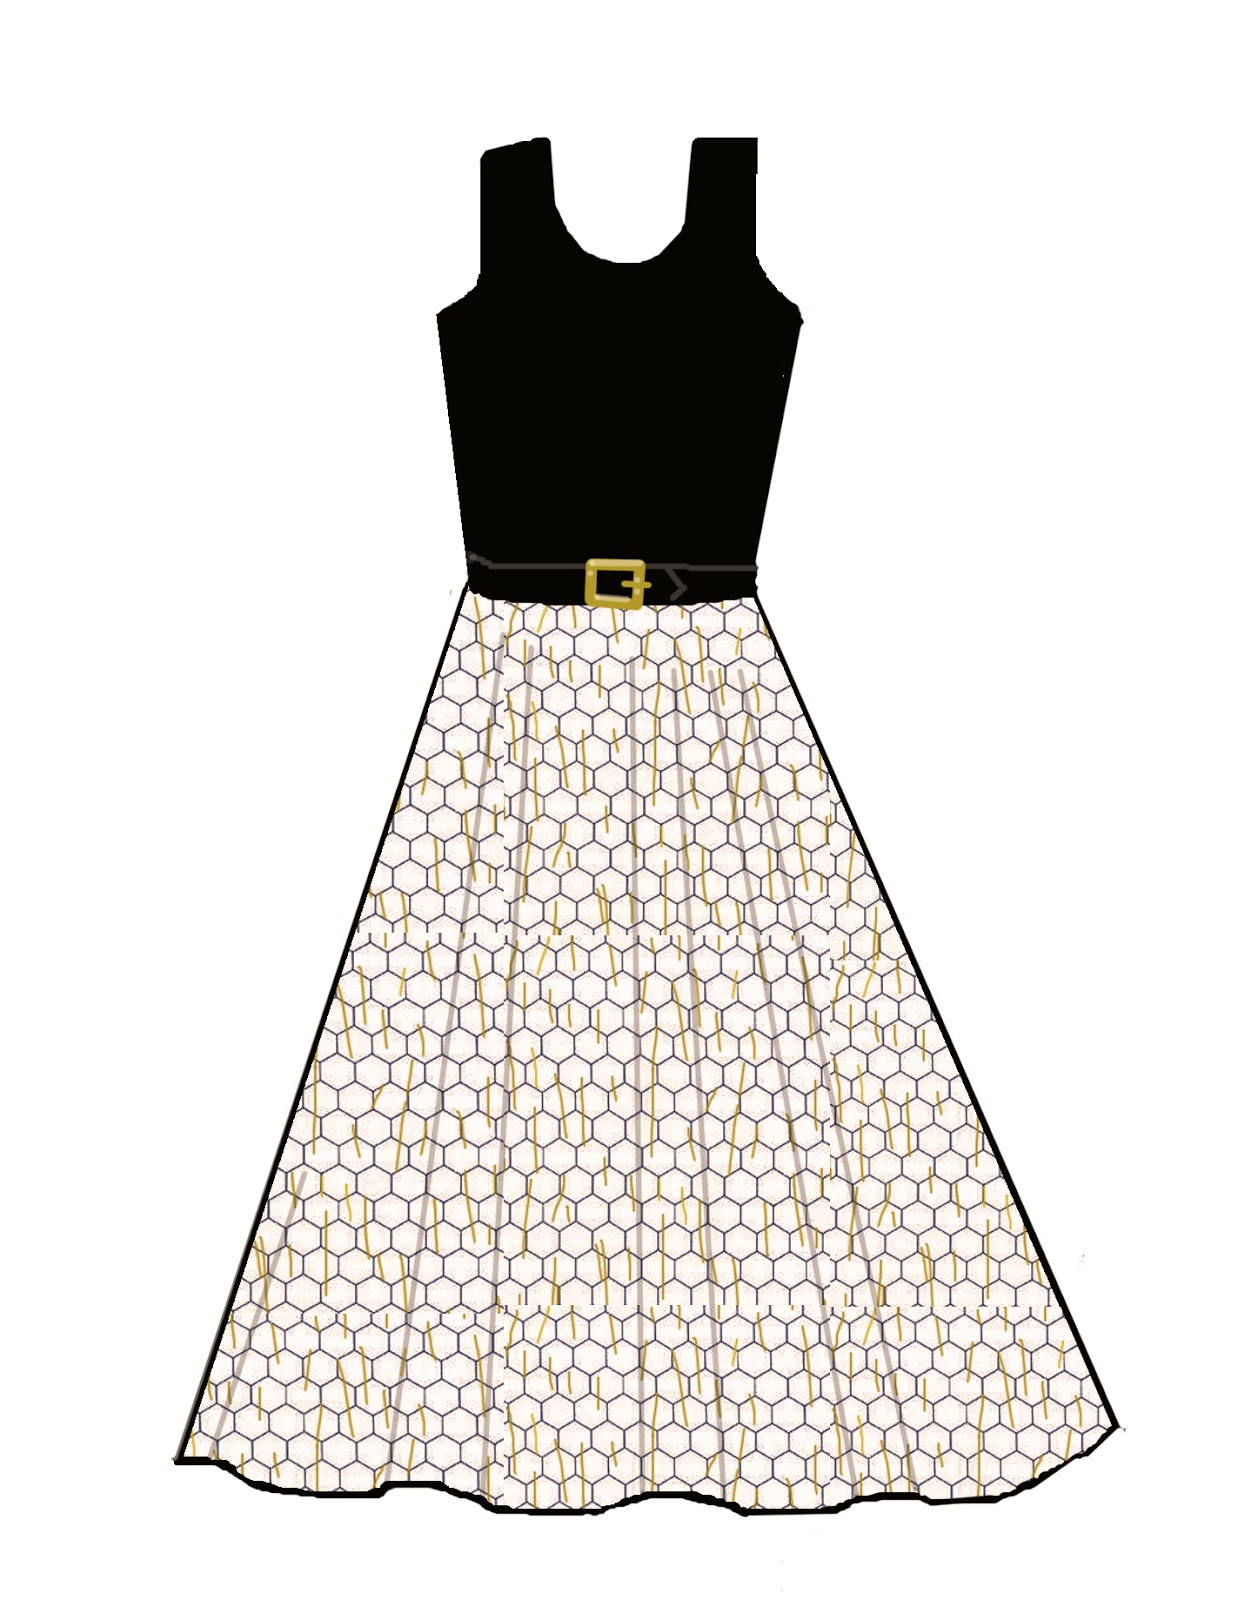 Simple Dress Drawing For Kids at GetDrawings.com | Free for personal ...